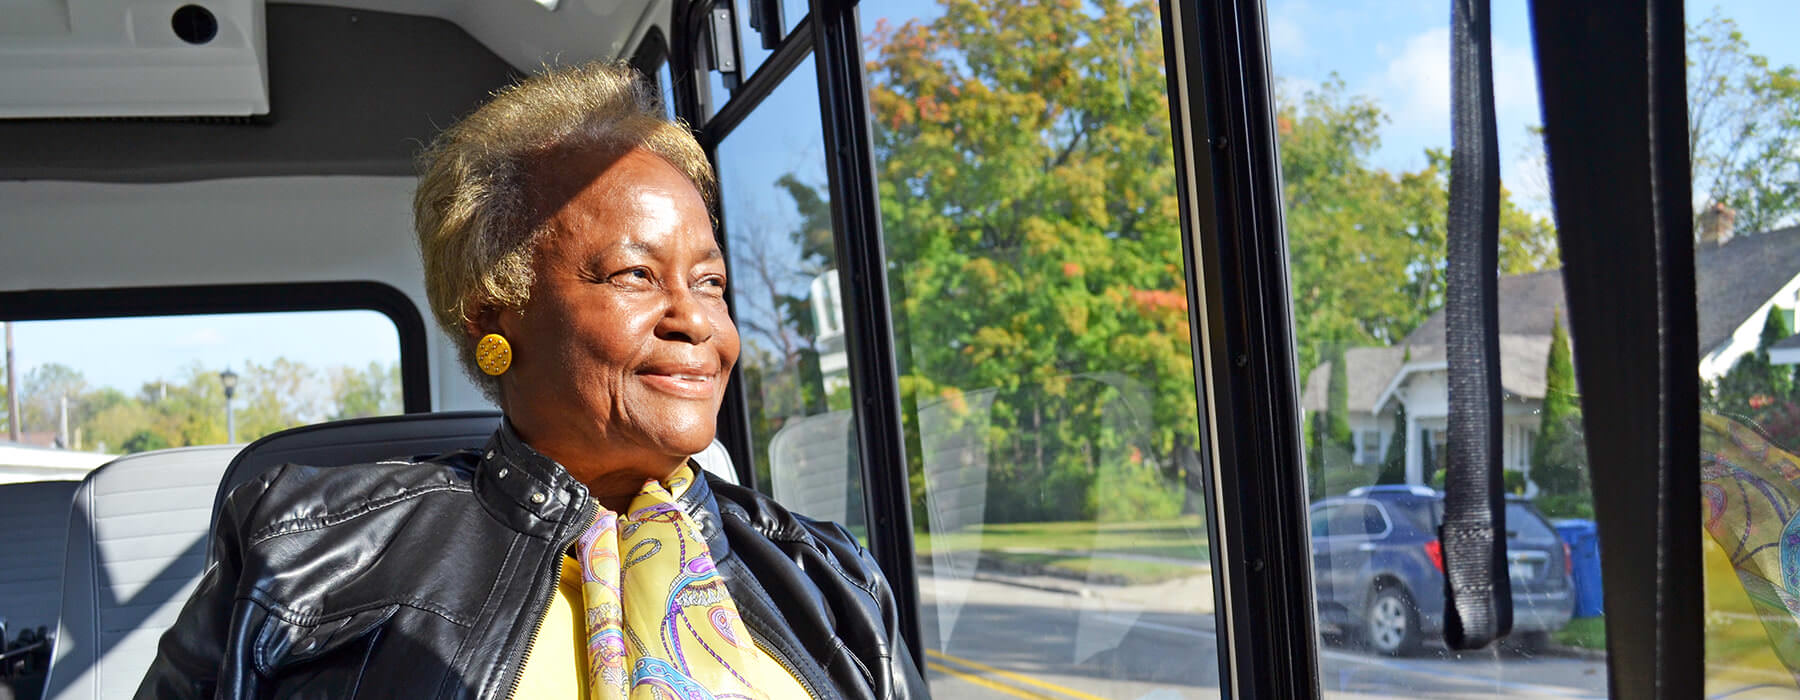 Smiling elderly woman looking out window of Your Ride bus.